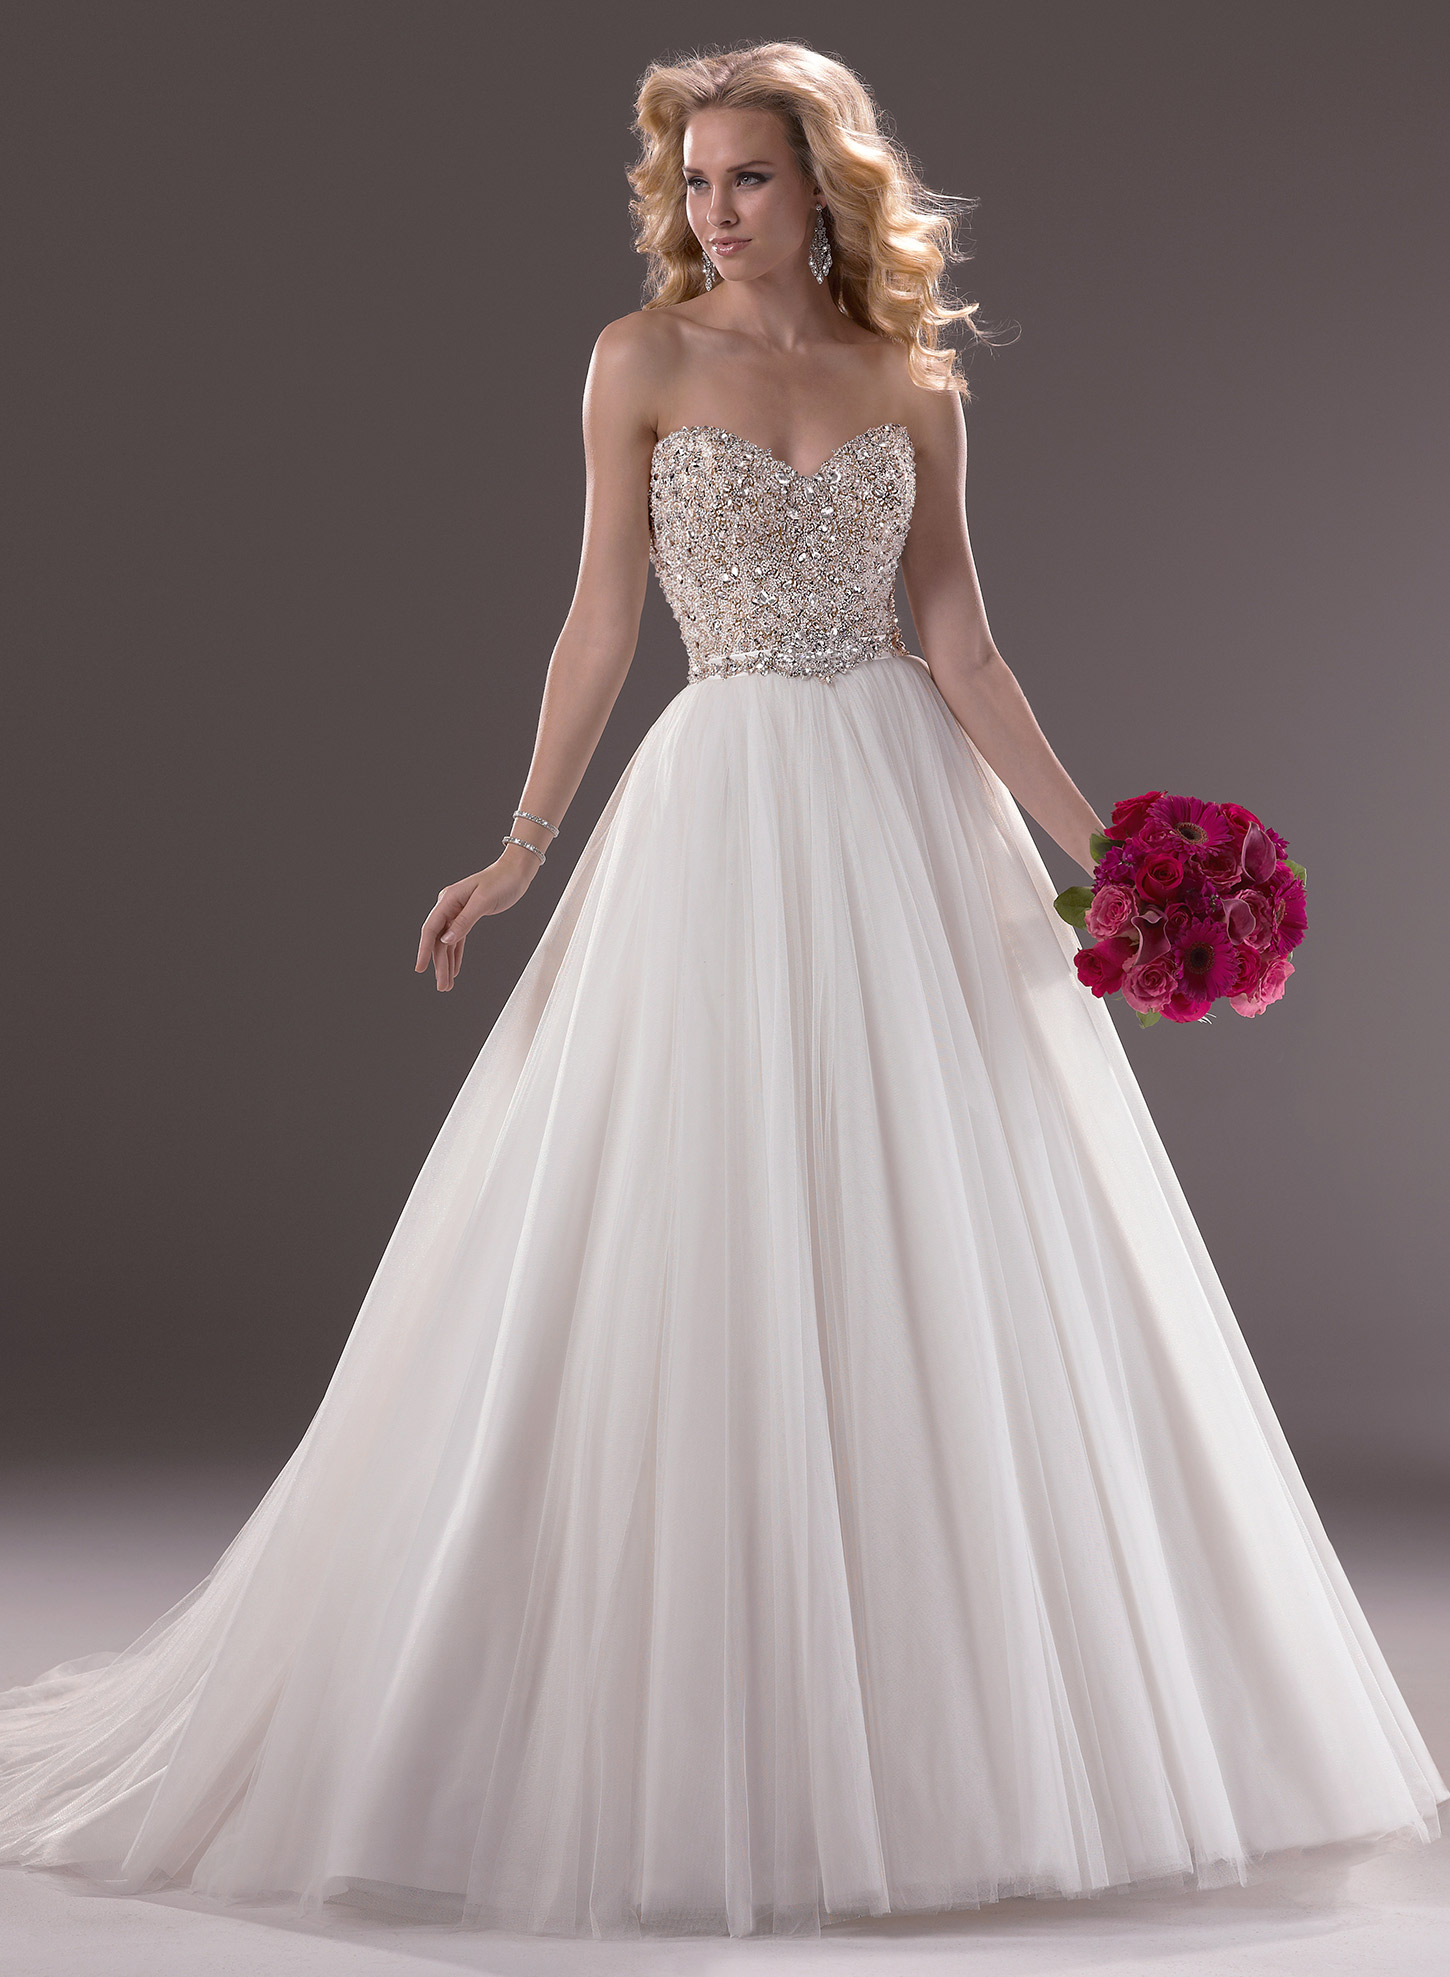 wedding dress designers known for bling 2 diamond wedding dresses The Best Gowns From Most In Demand Wedding Dress Designers